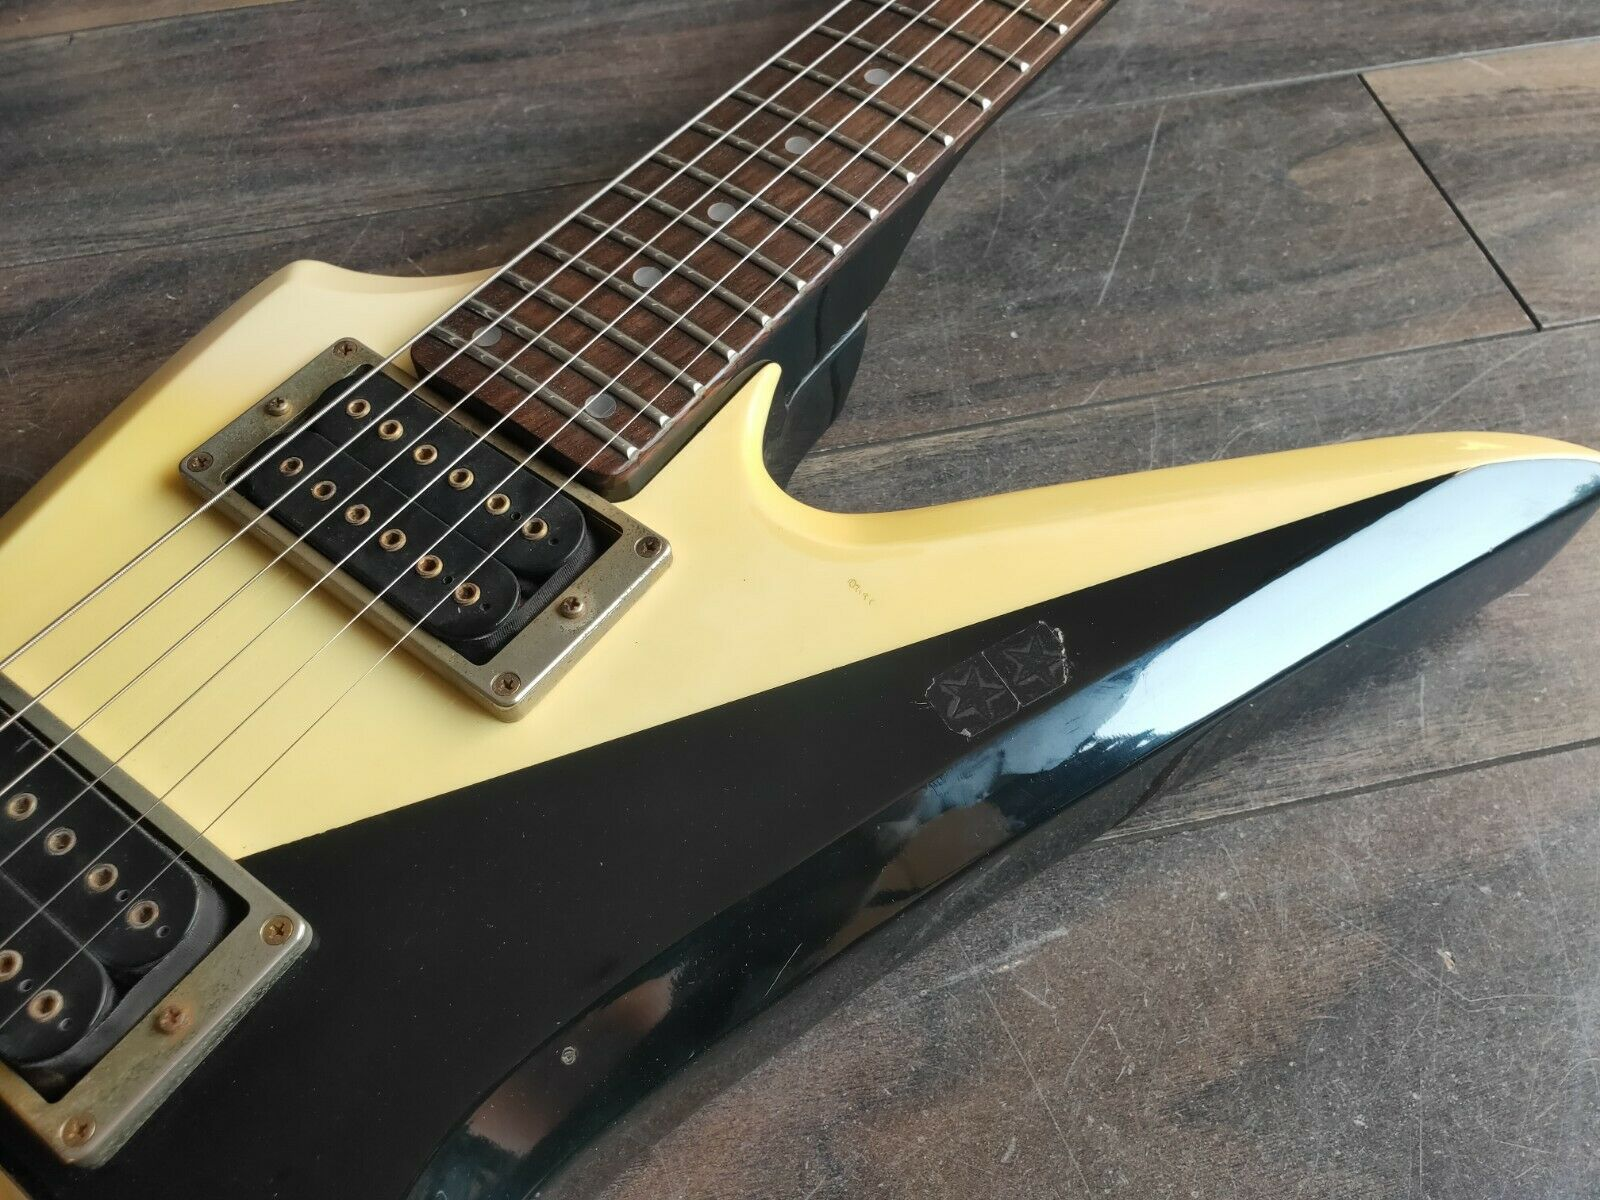 1983 Aria Pro II Japan ZZ-Custom Explorer MIJ Electric Guitar (Black/White)